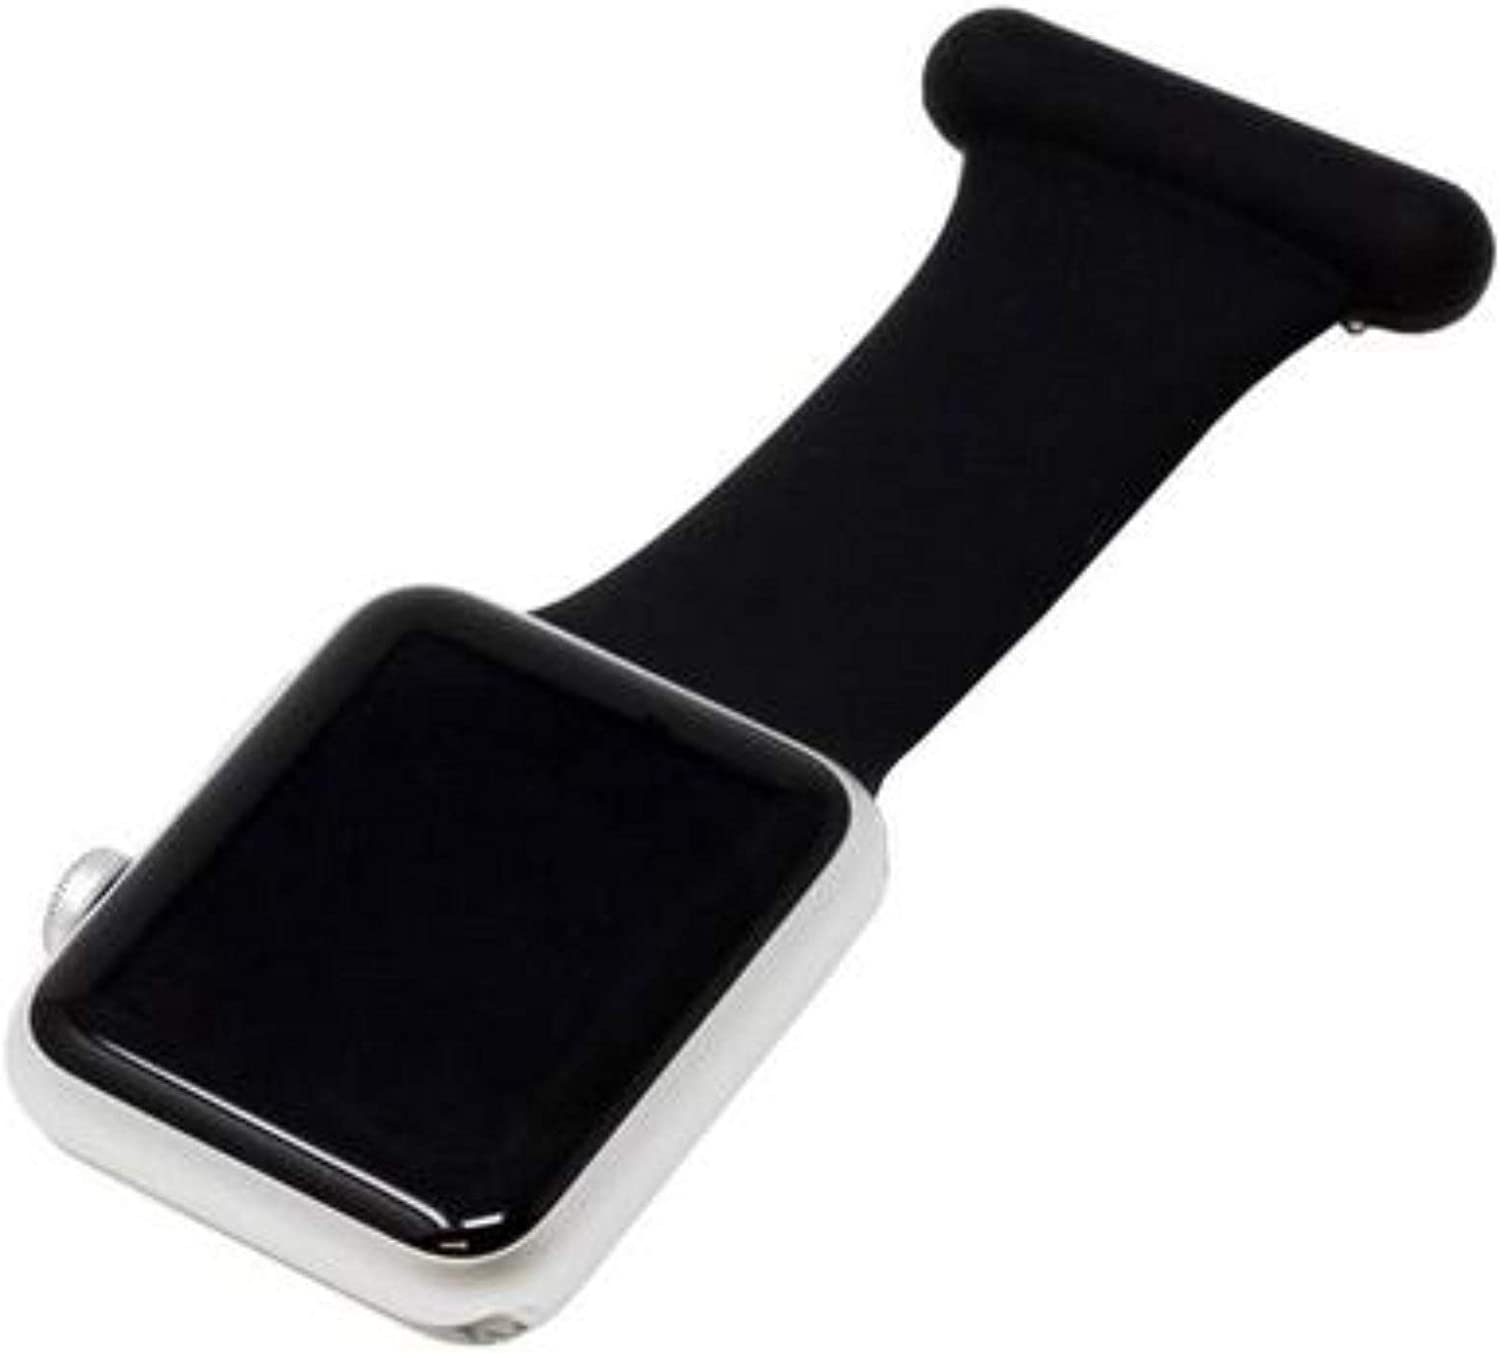 Makzib Fob for Apple Watch for Nurses Midwives Doctors Healthcare Paramedics, Silicone Pin Fob, Infection Control Design Compatible with iwatch Series 6, SE,5,4,3,2,1